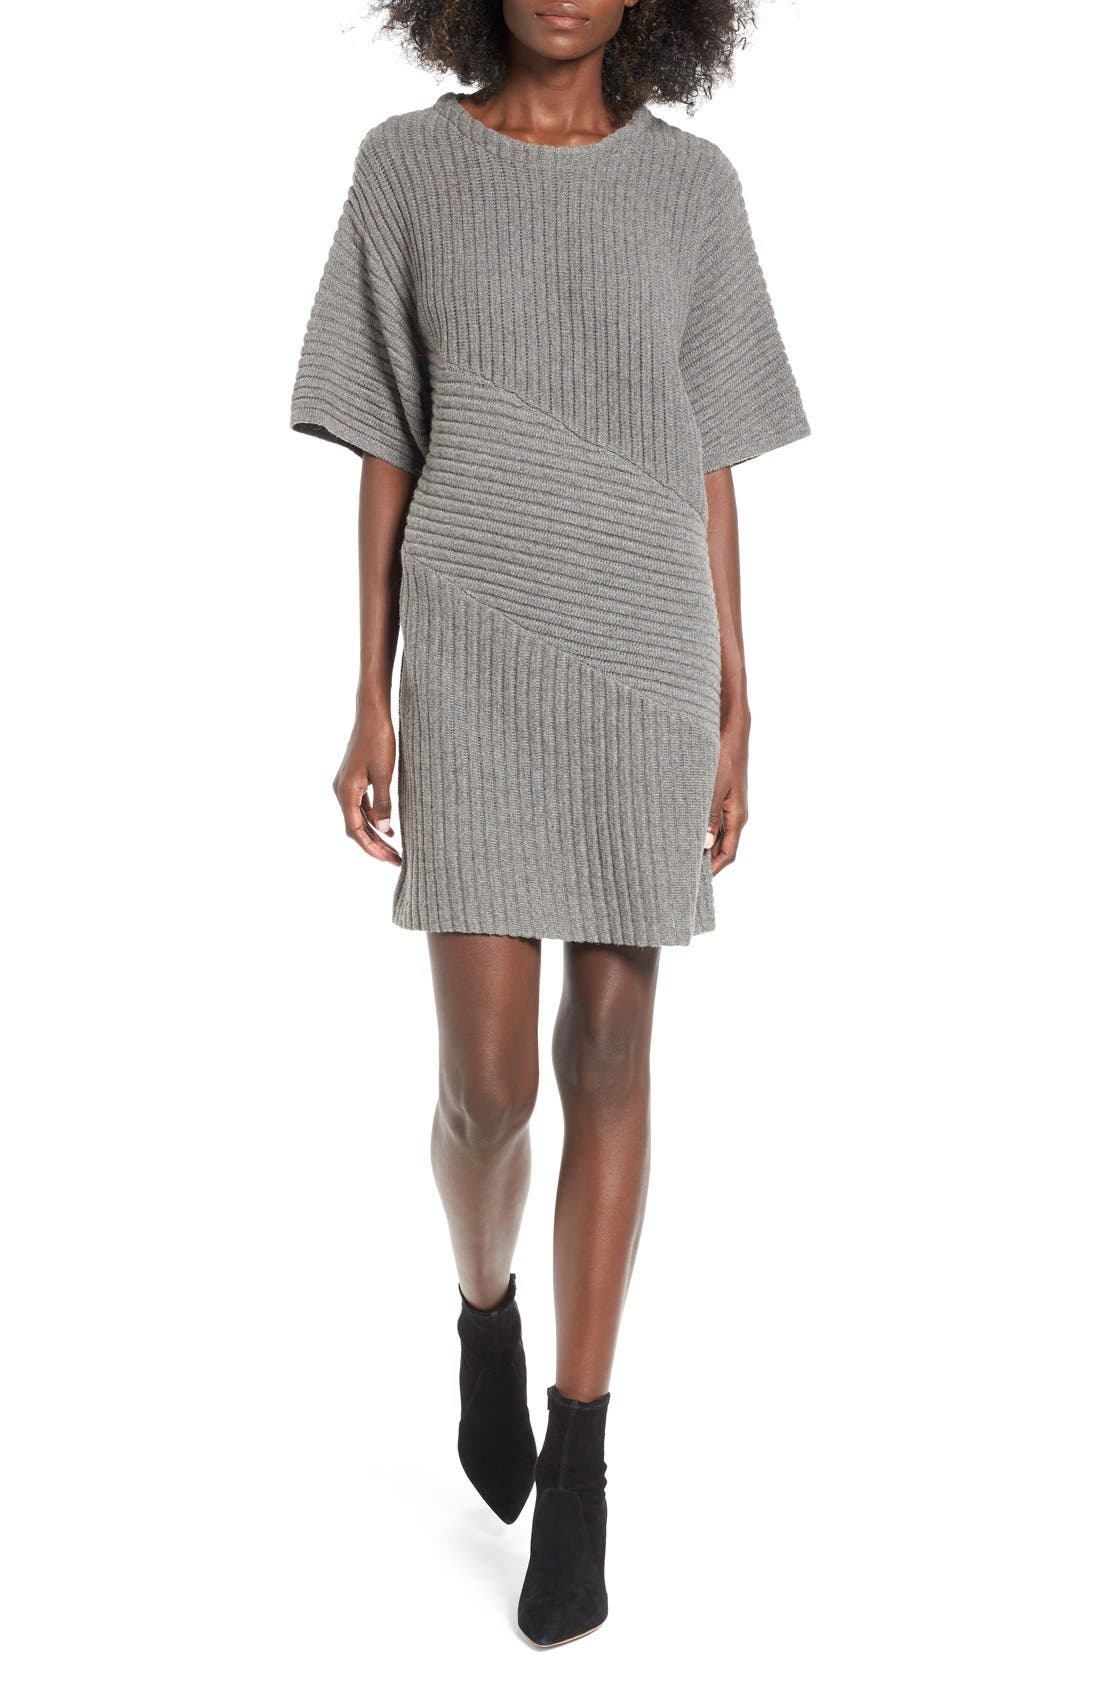 Alternate Image 1 Selected - ASTR Ribbed Sweater Dress